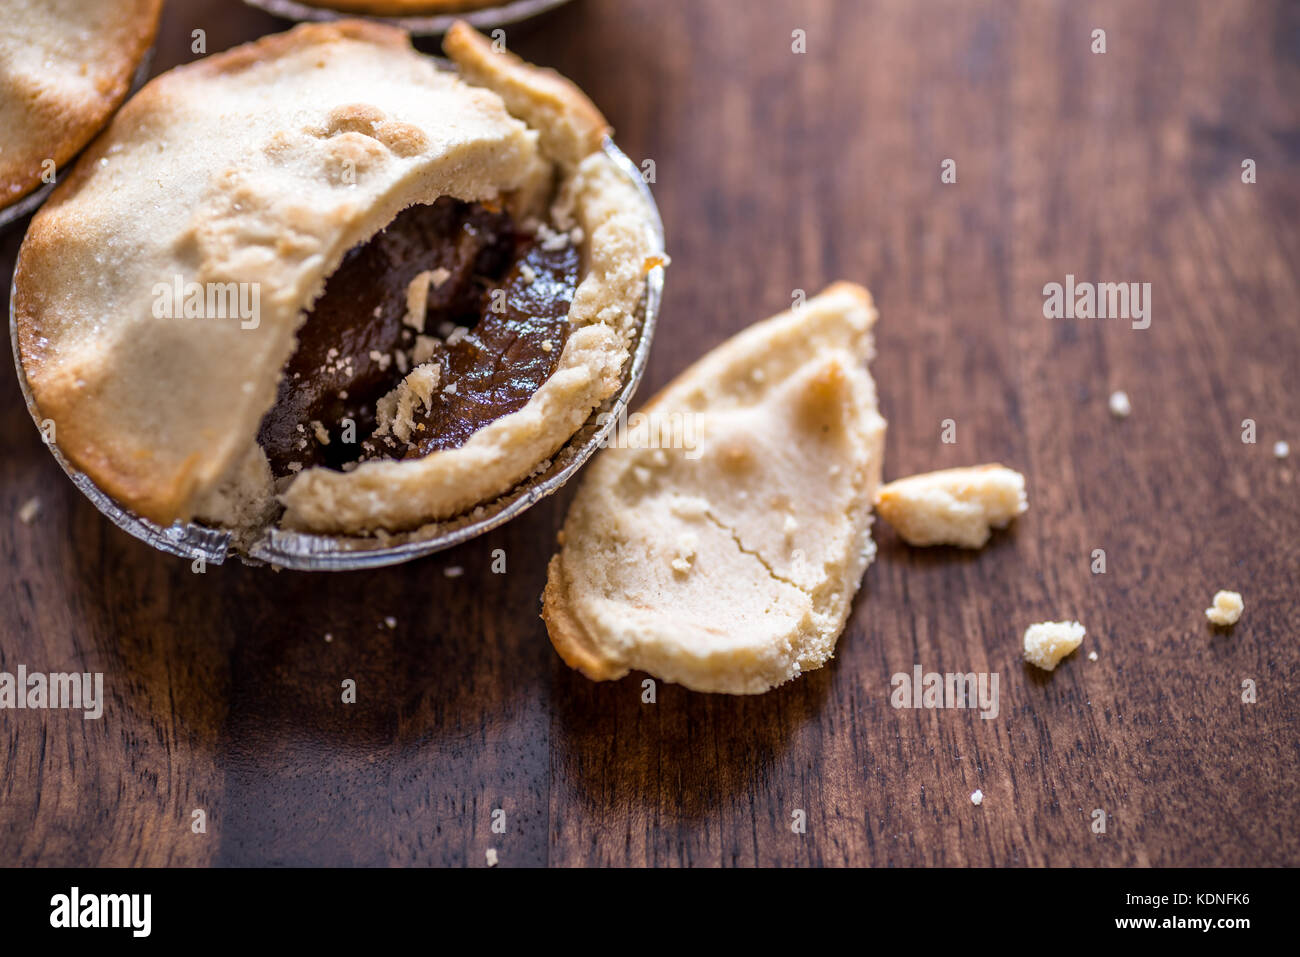 Christmas mince Pie close-up with copy space - Stock Image